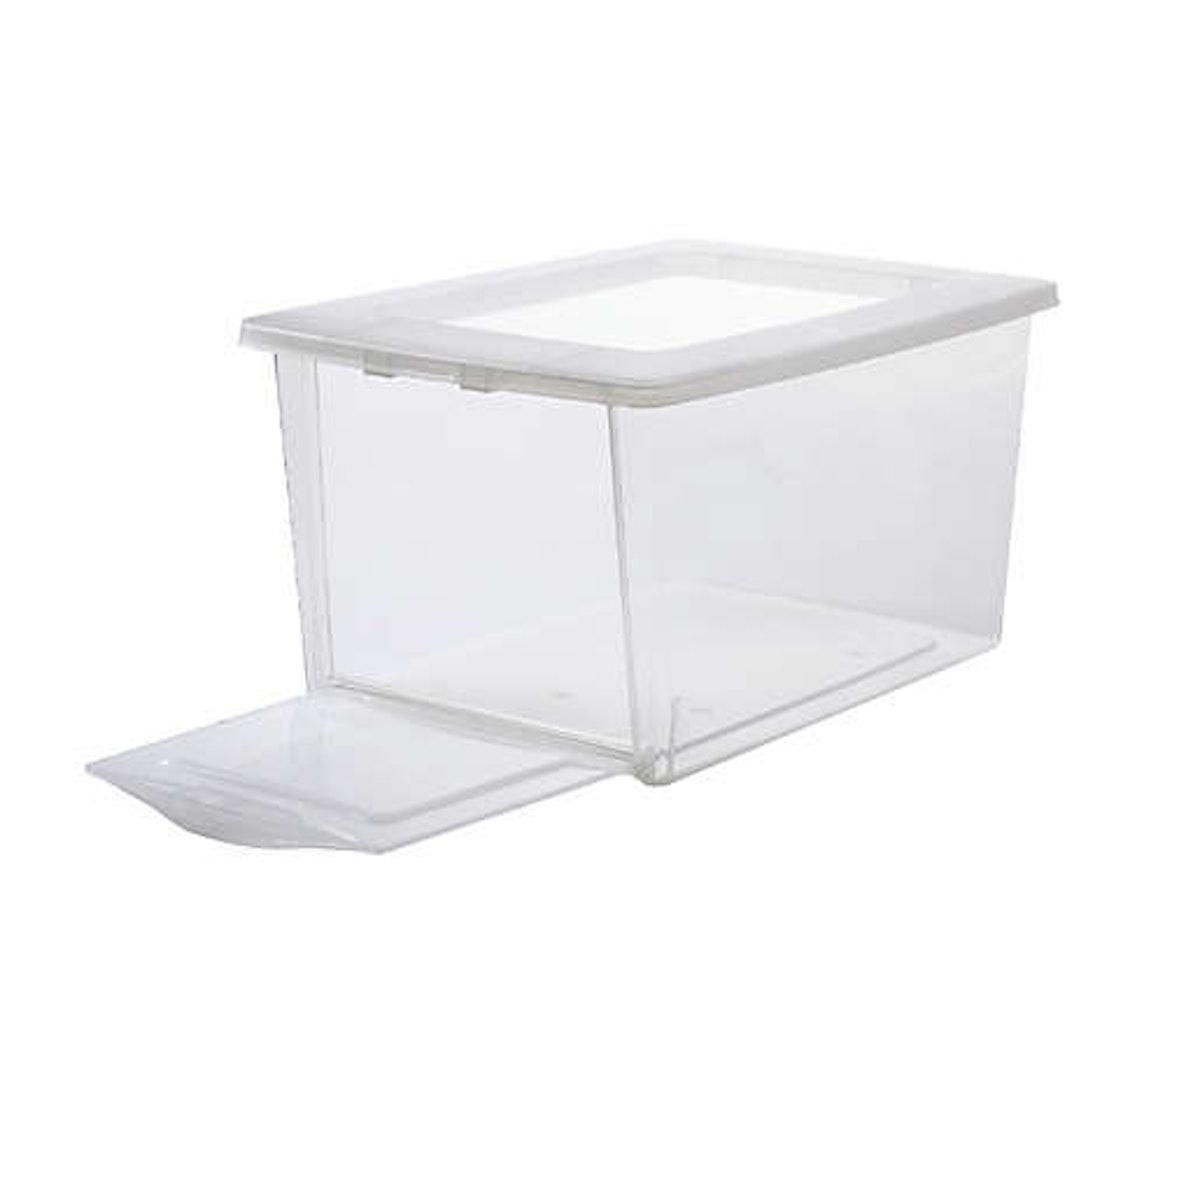 Simply Essential Drop-Front Storage Shoe Boxes (Set of 4)